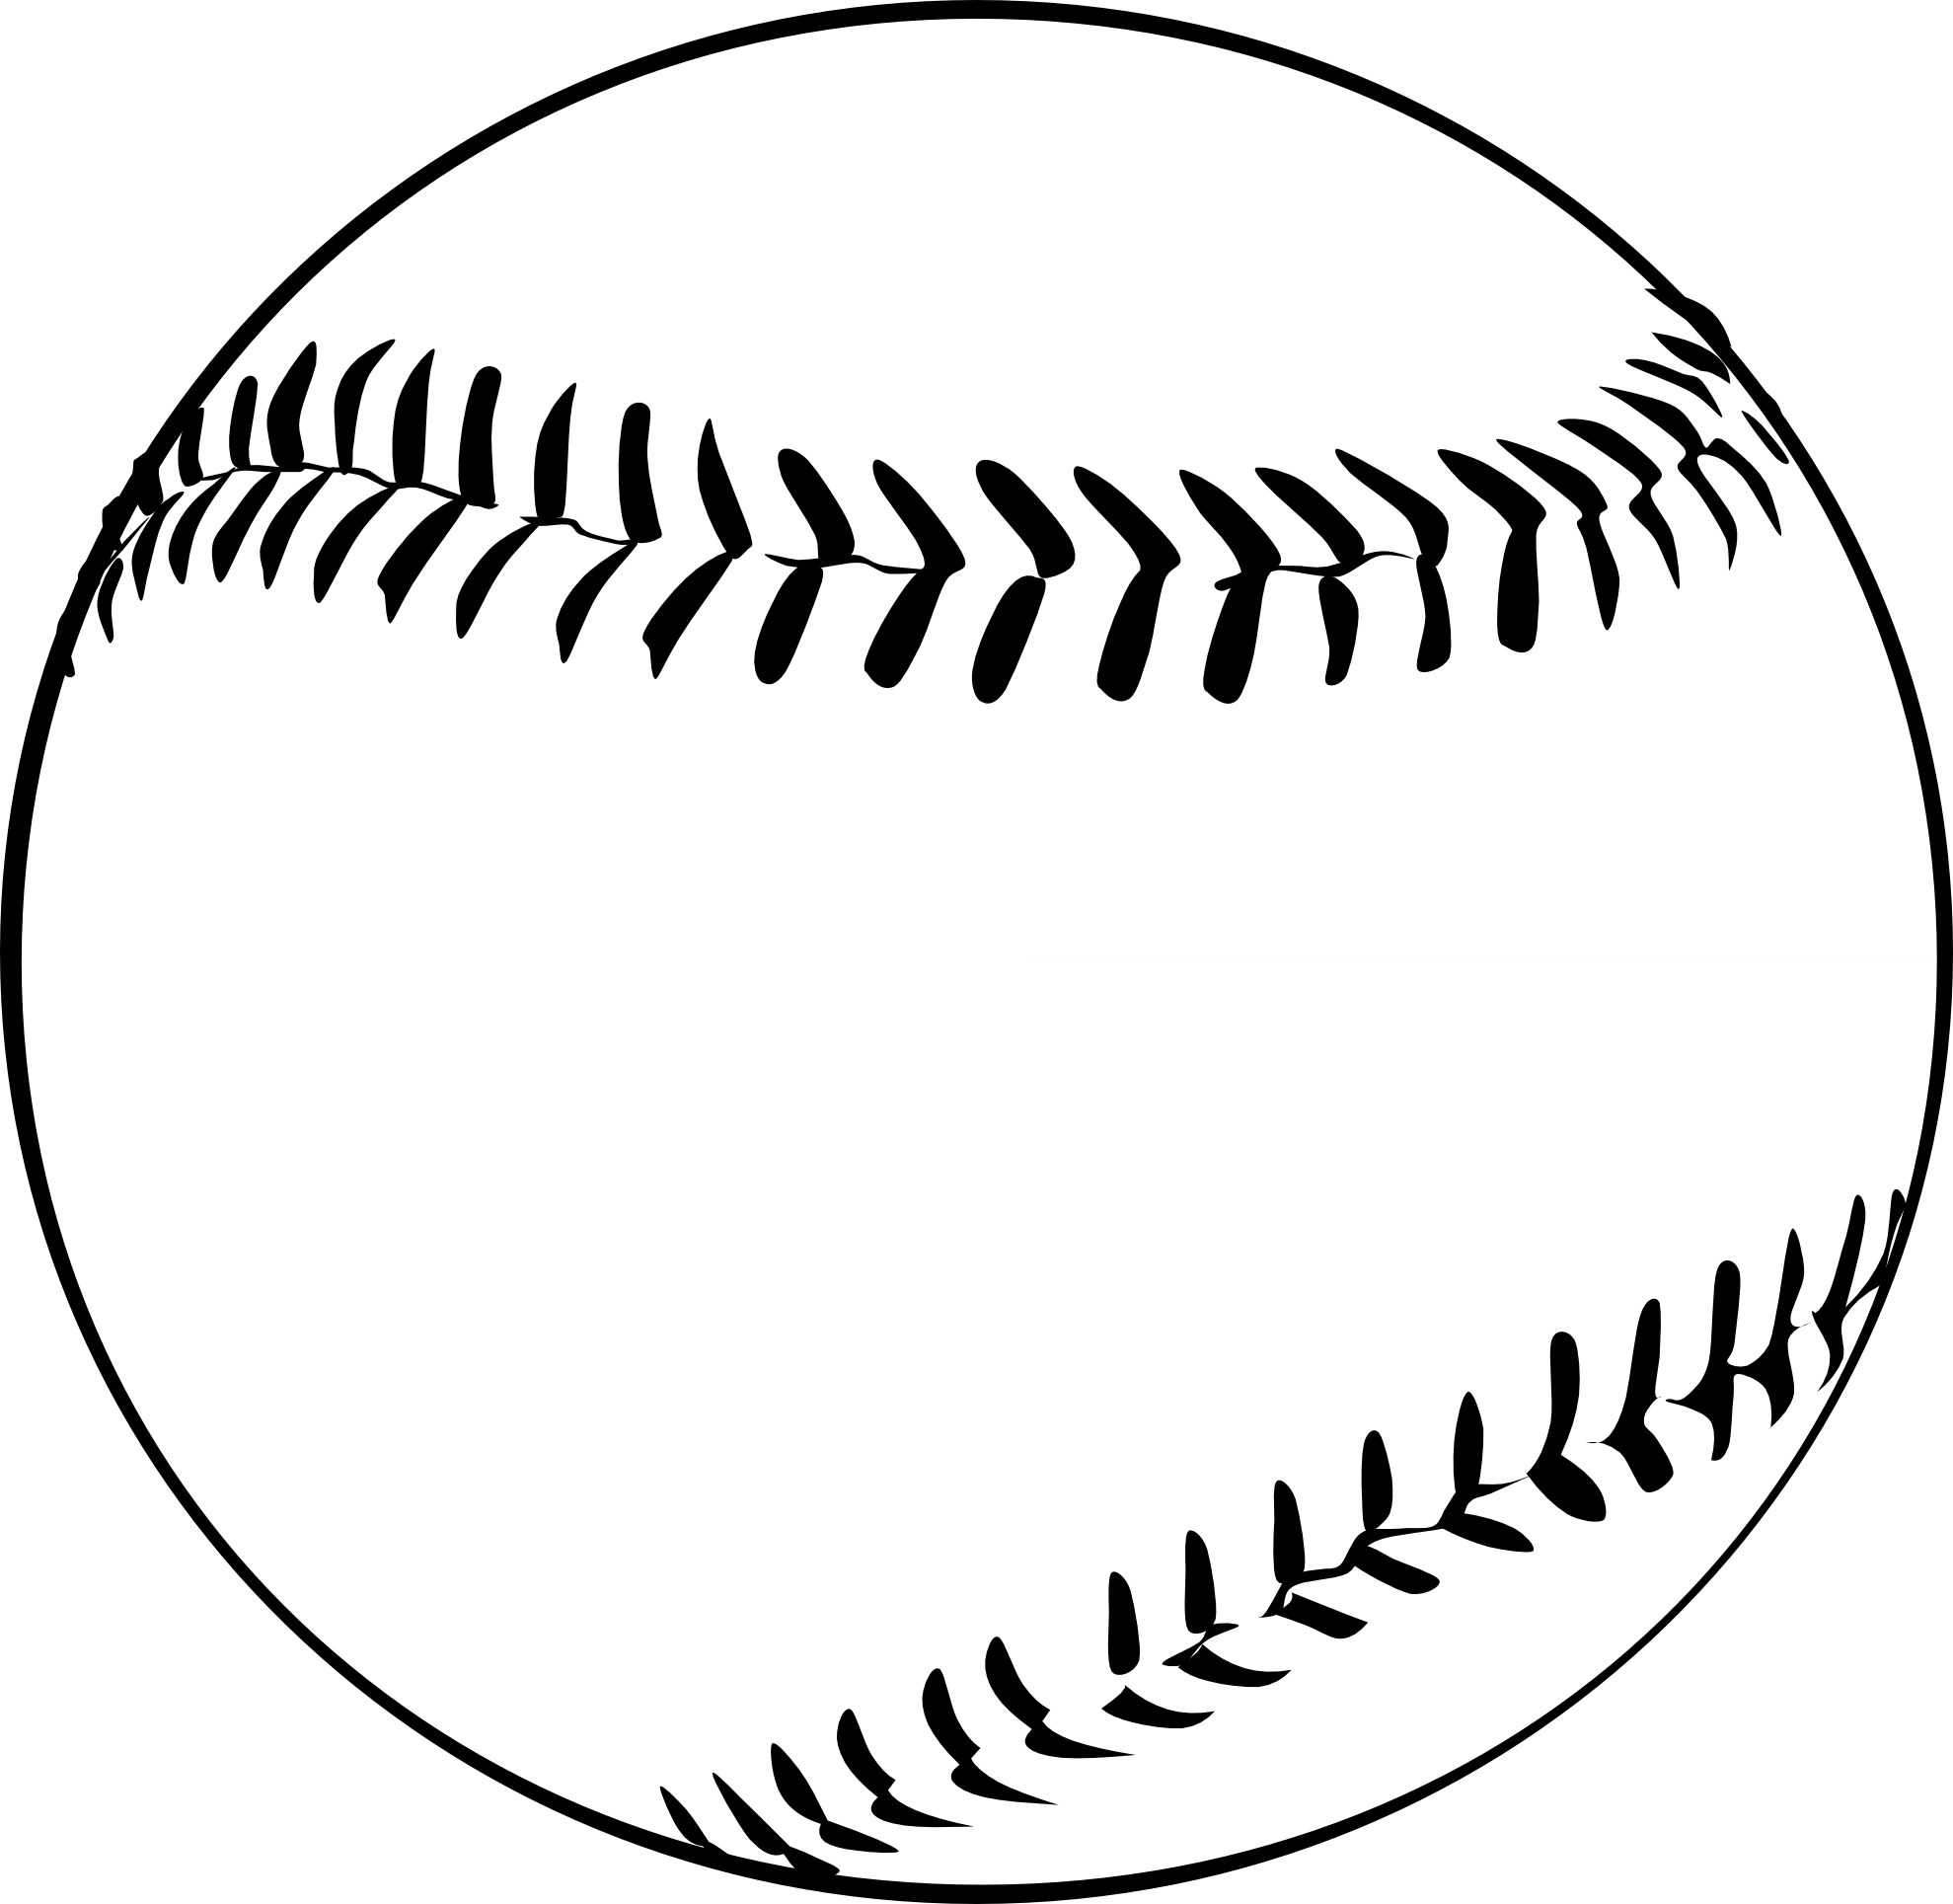 Black And White Vector Art Google Search Baseball Coloring Pages Free Clip Art Clipart Black And White